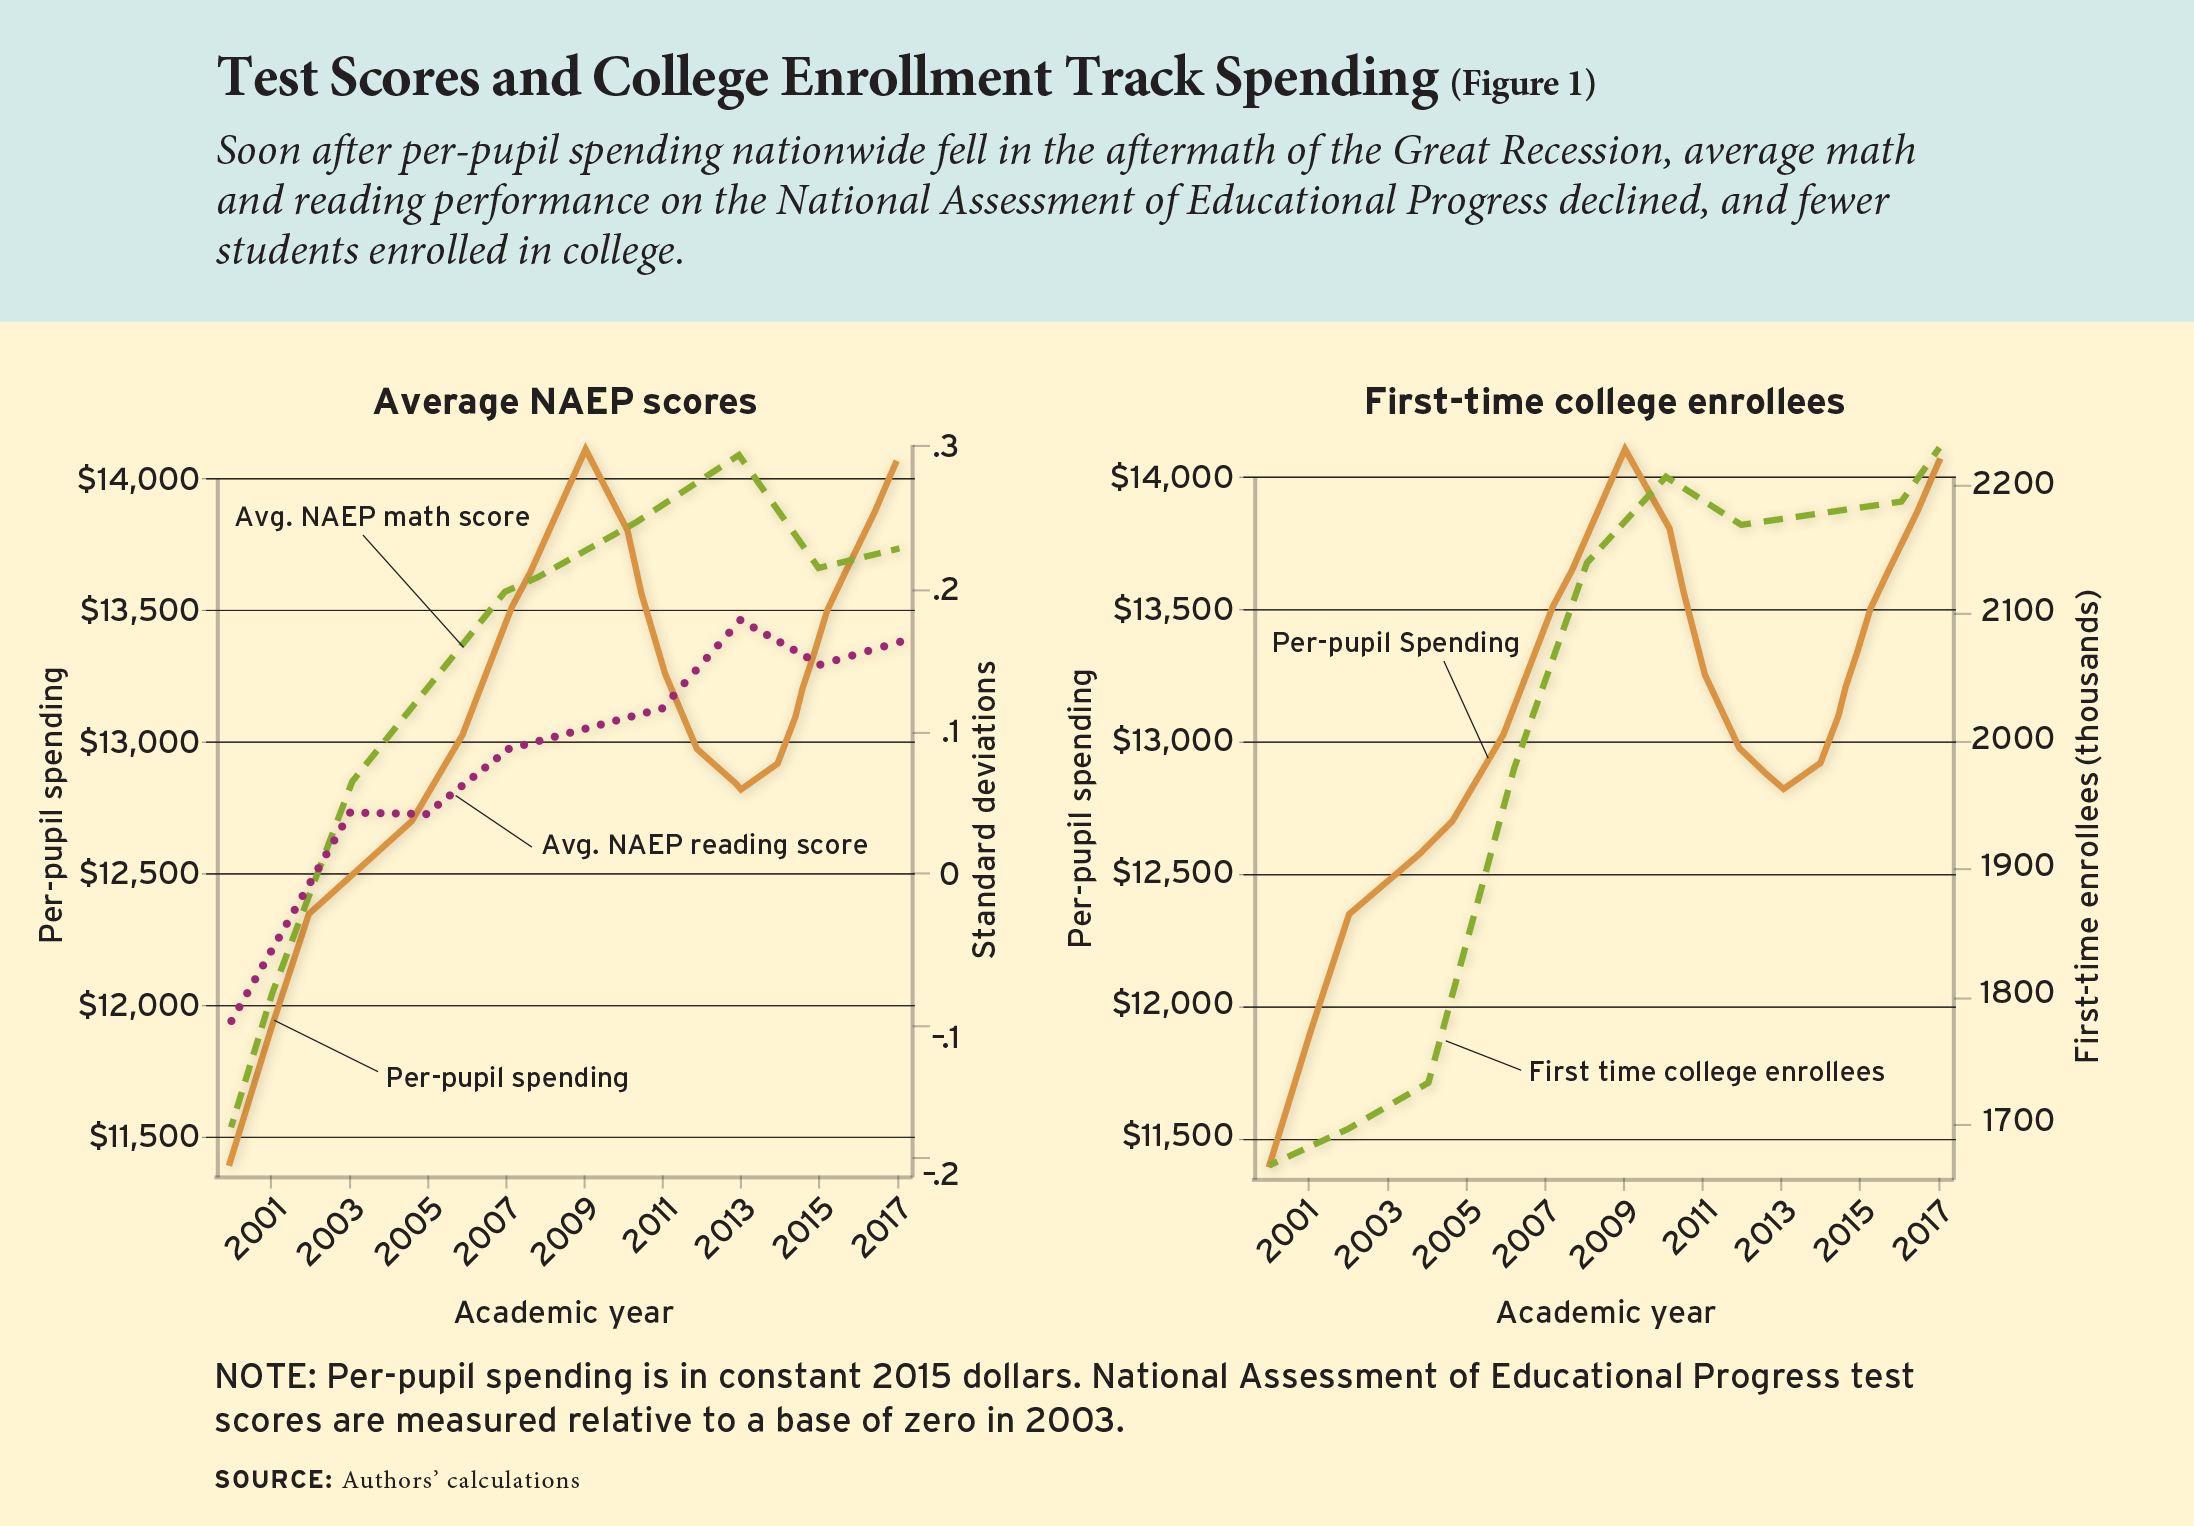 Figure 1: Test Scores and College Enrollment Track Spending